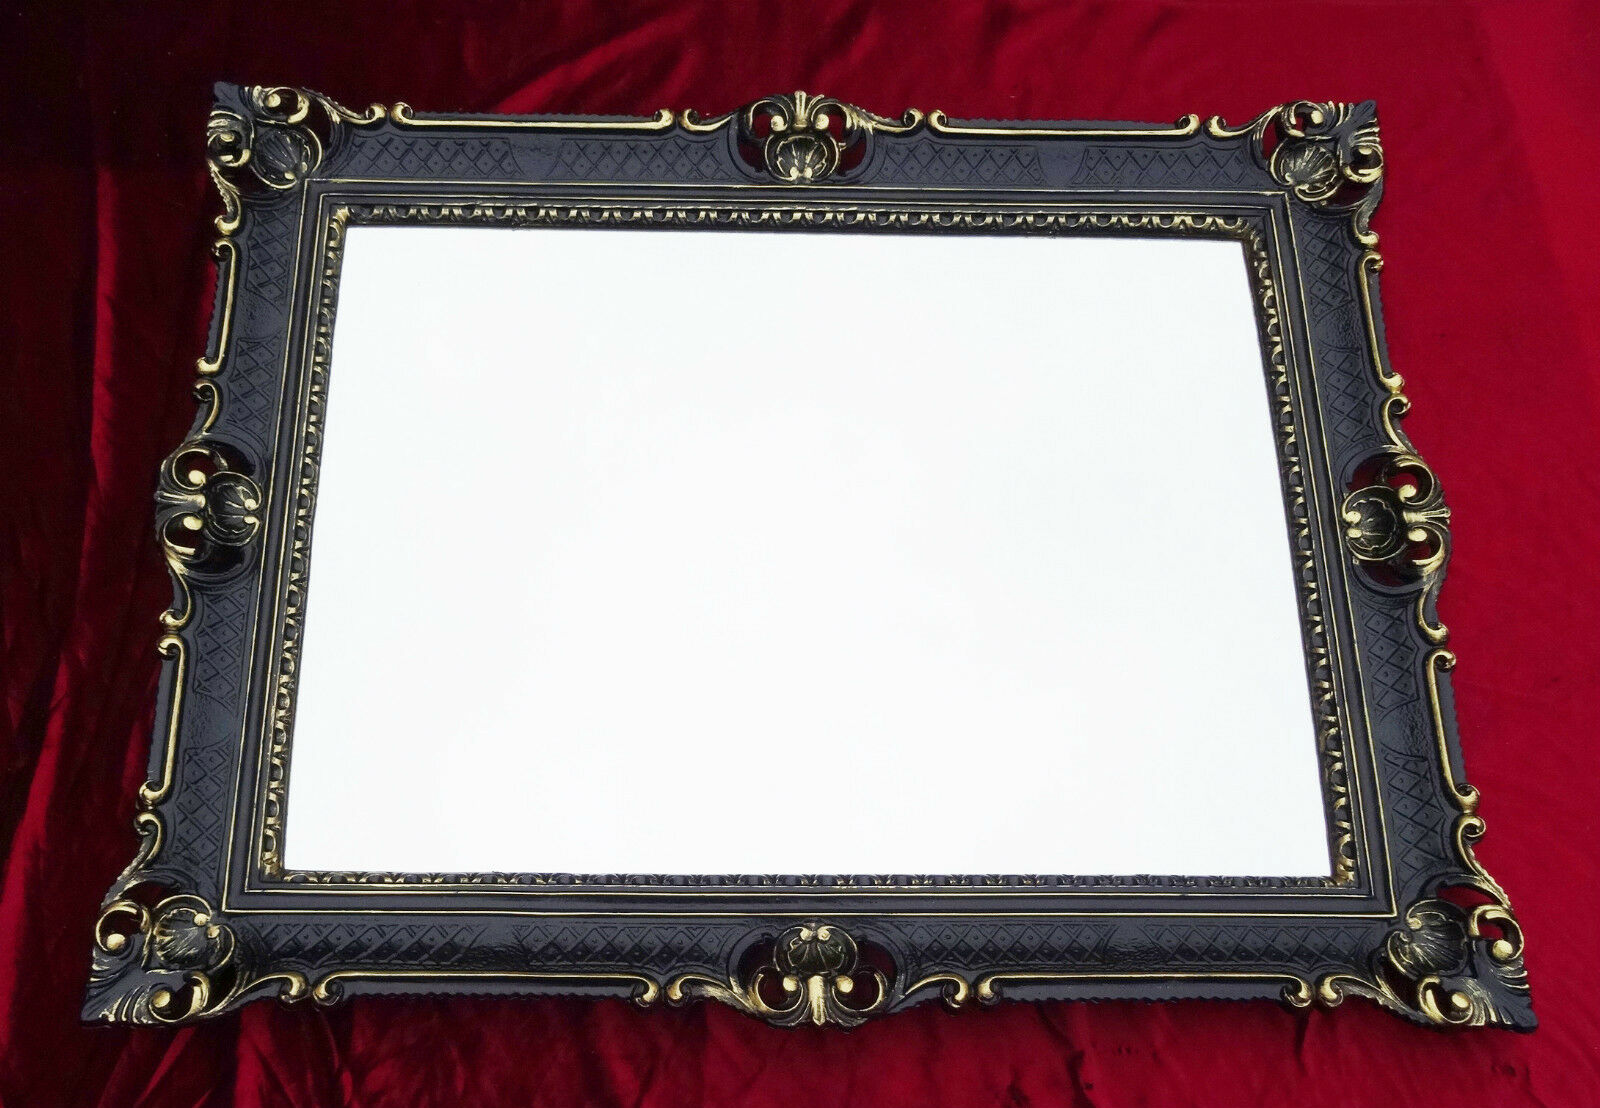 Couchtisch 90x70 Wall Mirror Black Gold Antique Baroque Rococo 90x70 Frame